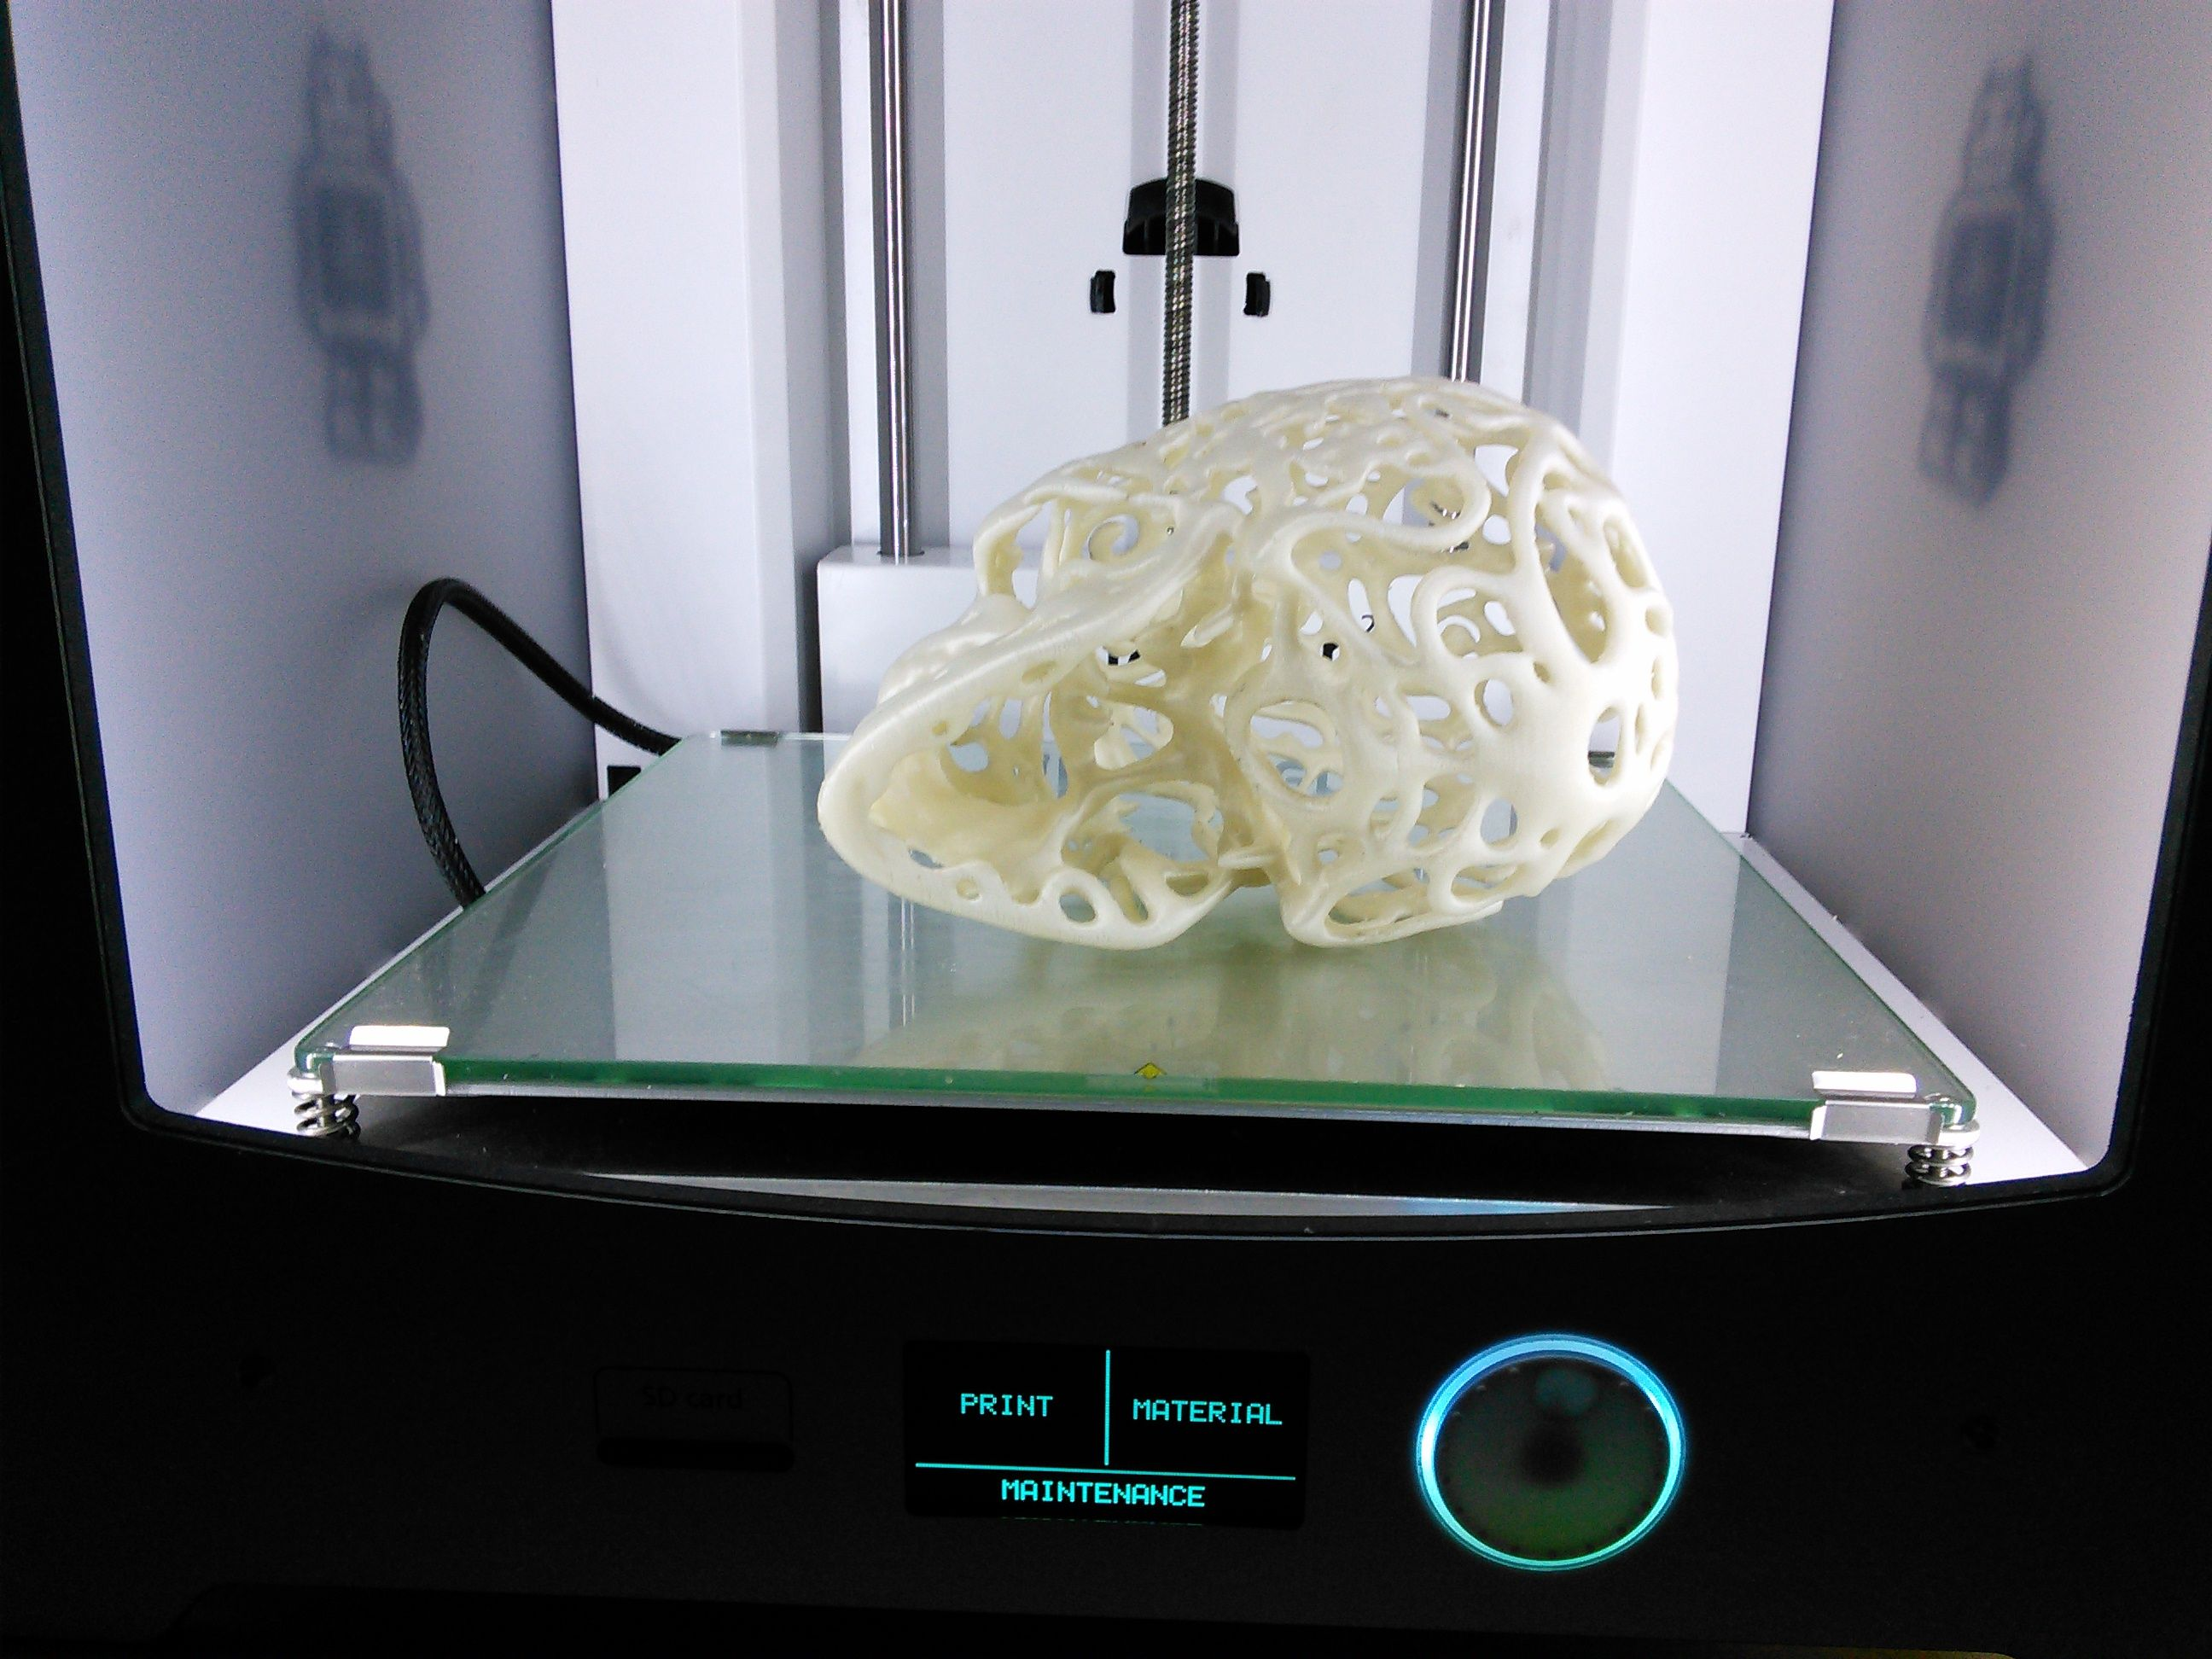 3D Printed Filigree Cranium by Dizingof on Ultimaker2 006